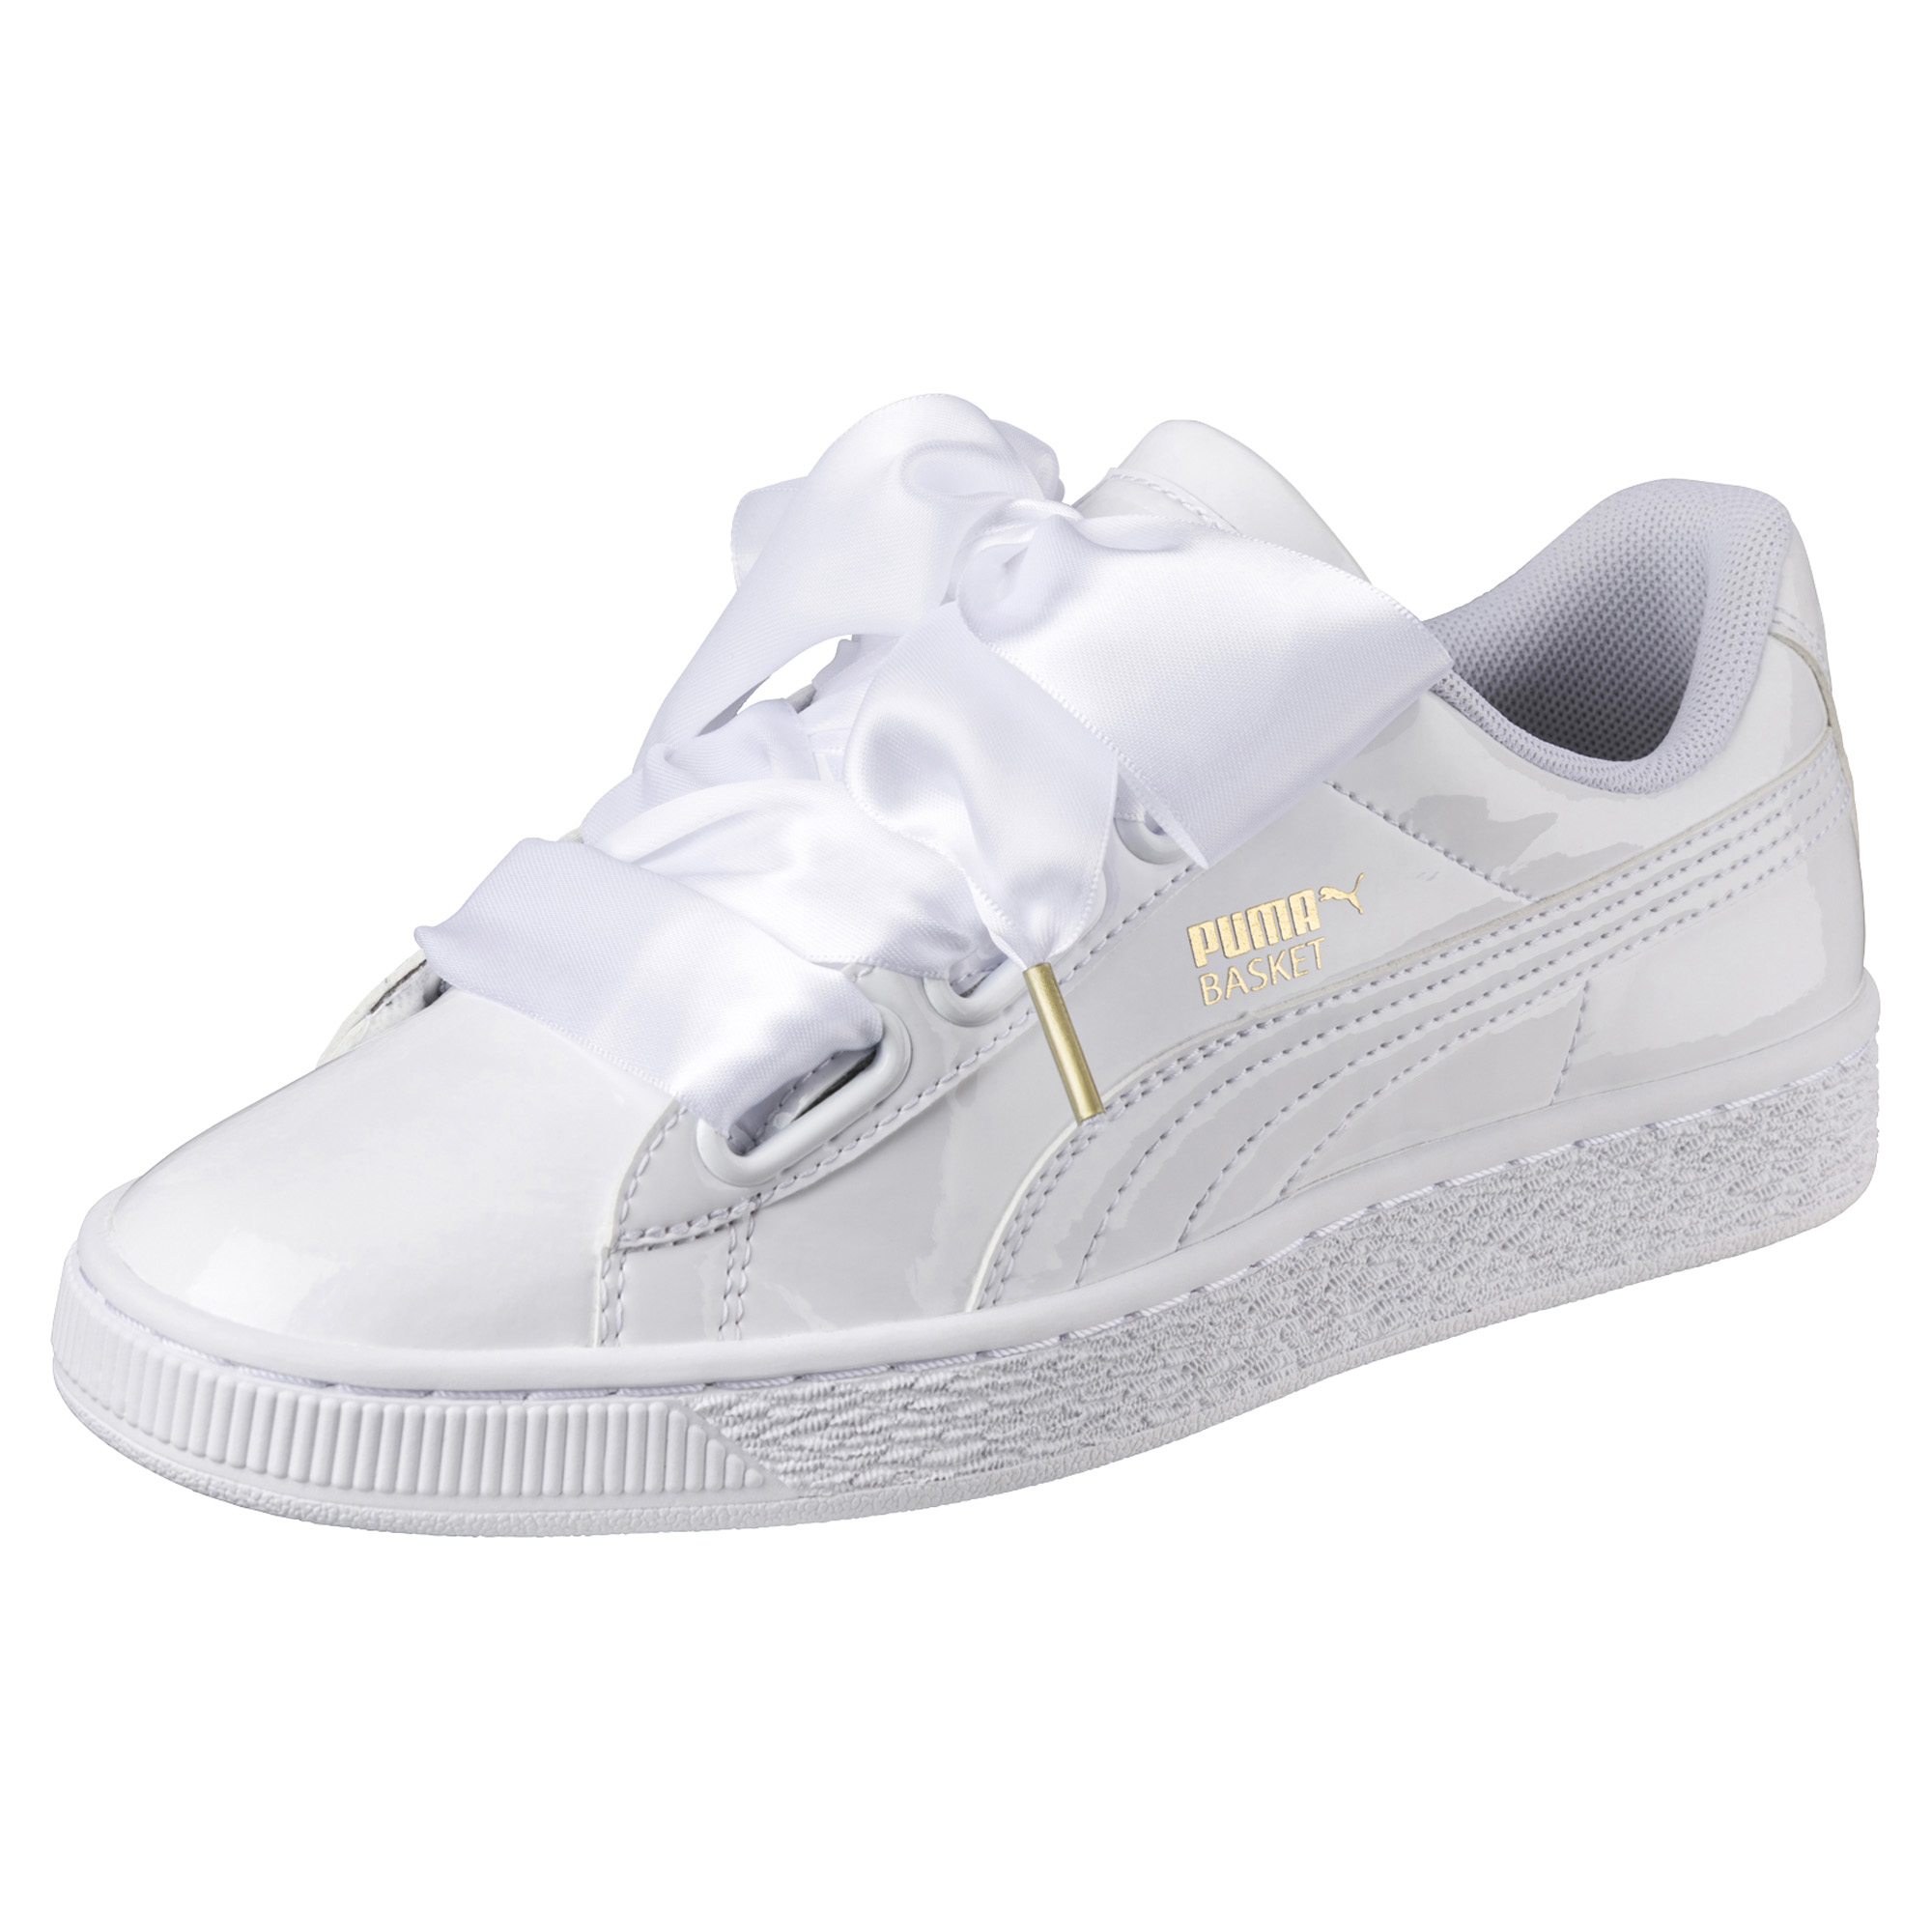 dddcbcb9250 PUMA Launches All-New And Glossy Basket Heart Sneakers | Pamper.My